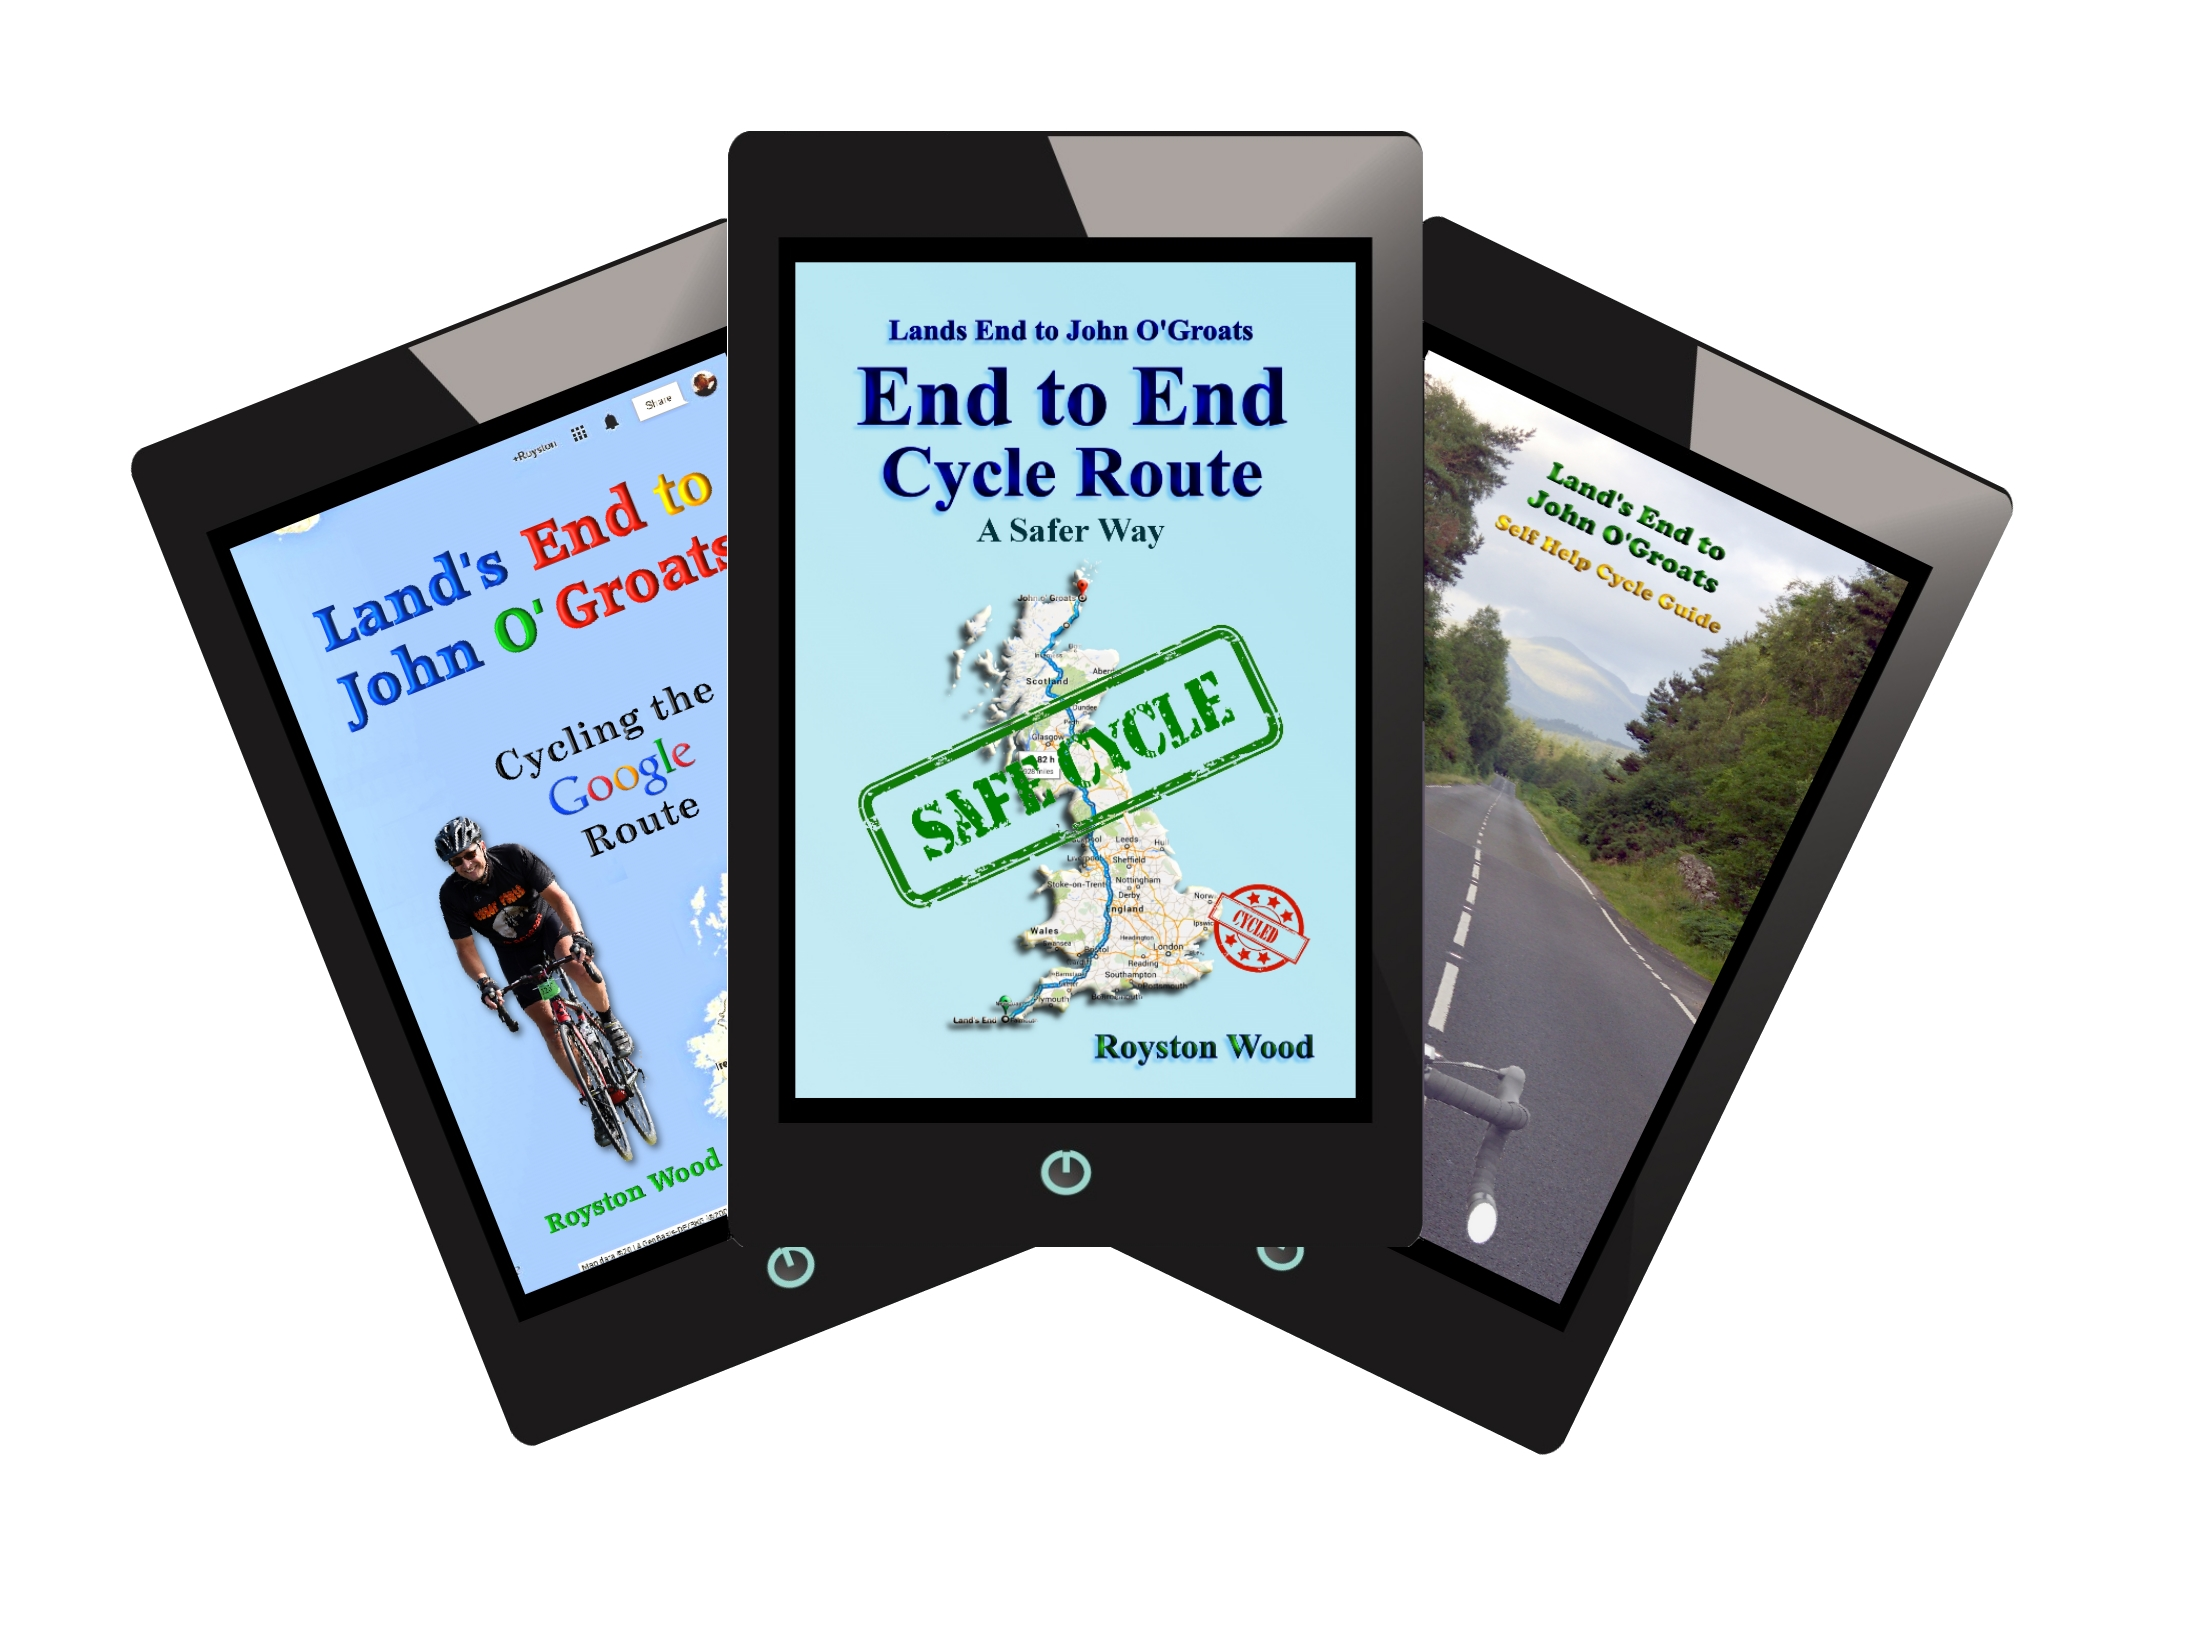 Land's End to John O'Groats Cycle Route Book Special Offer - image